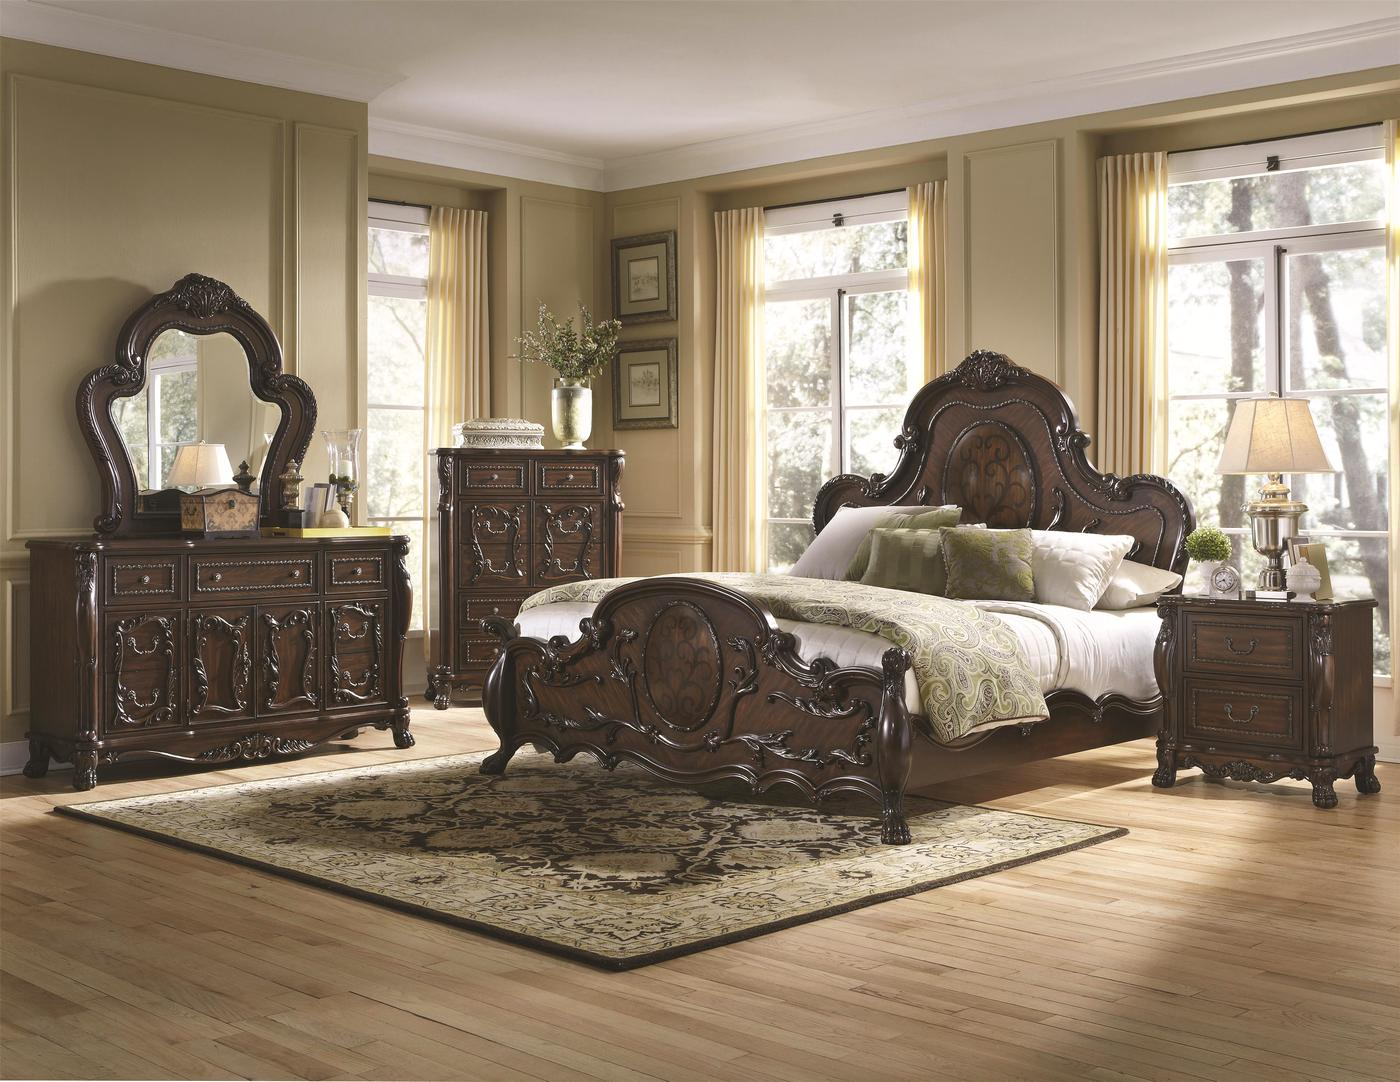 Cherry Bedroom Sets